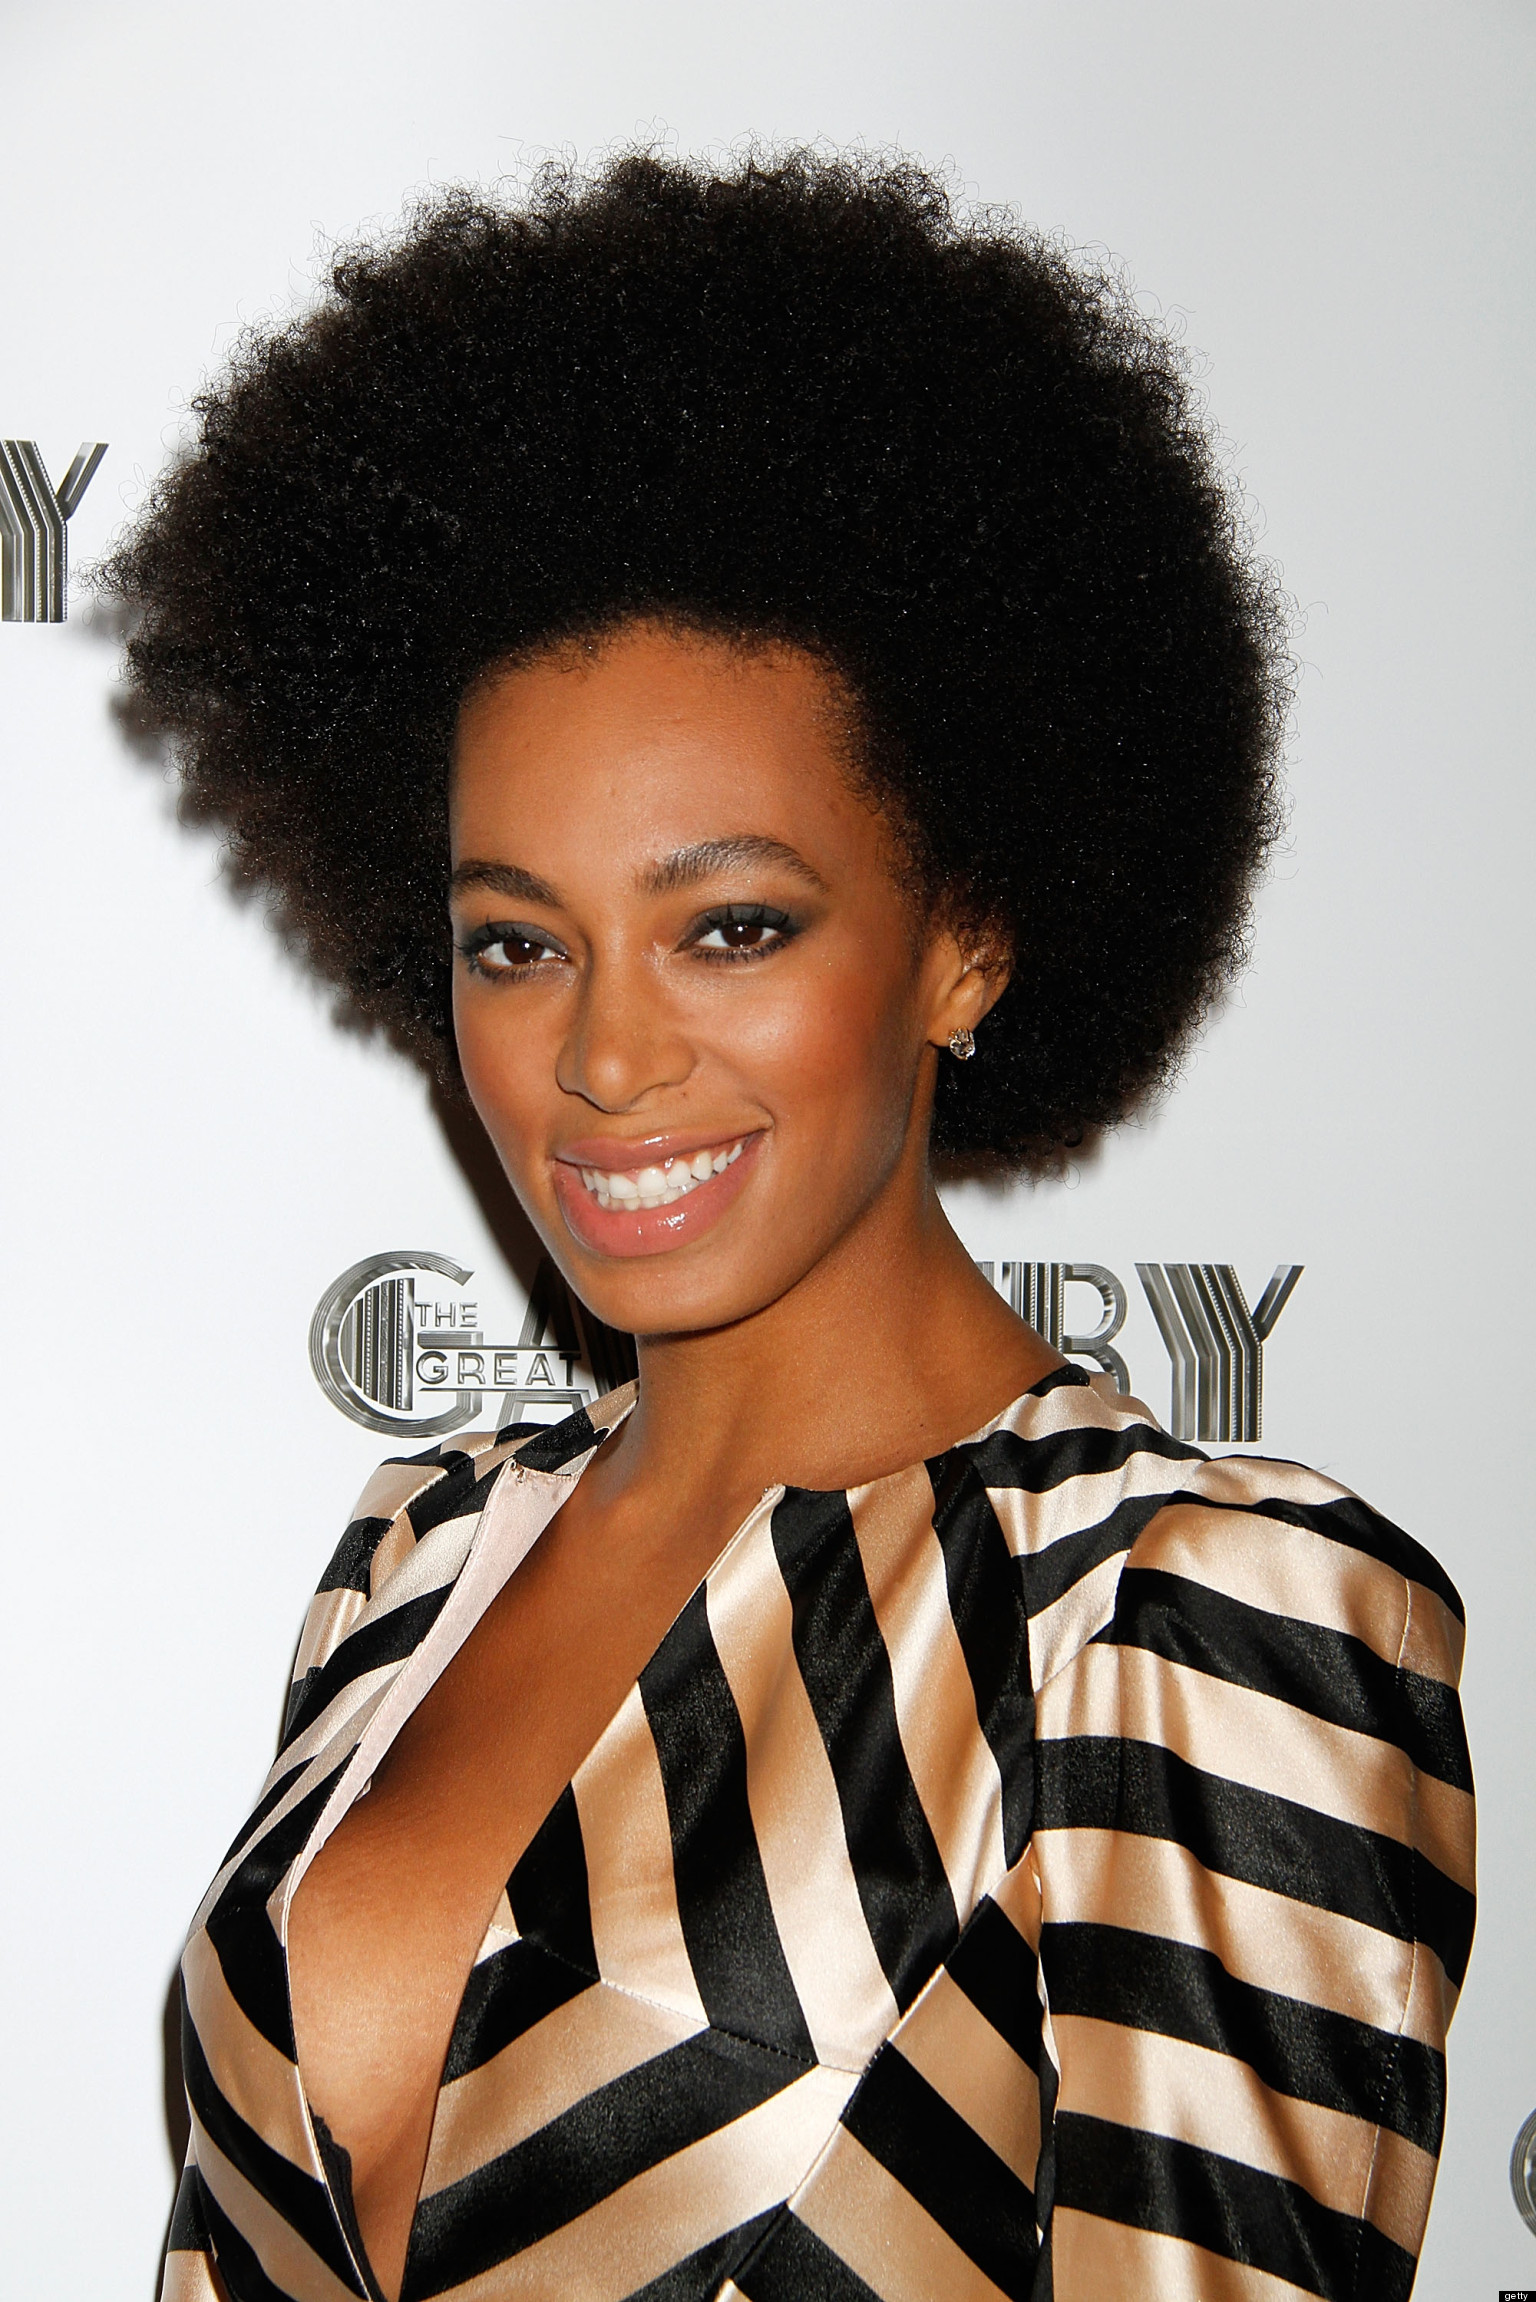 Solange Knowles Cleavage On Display At The Great Gatsby